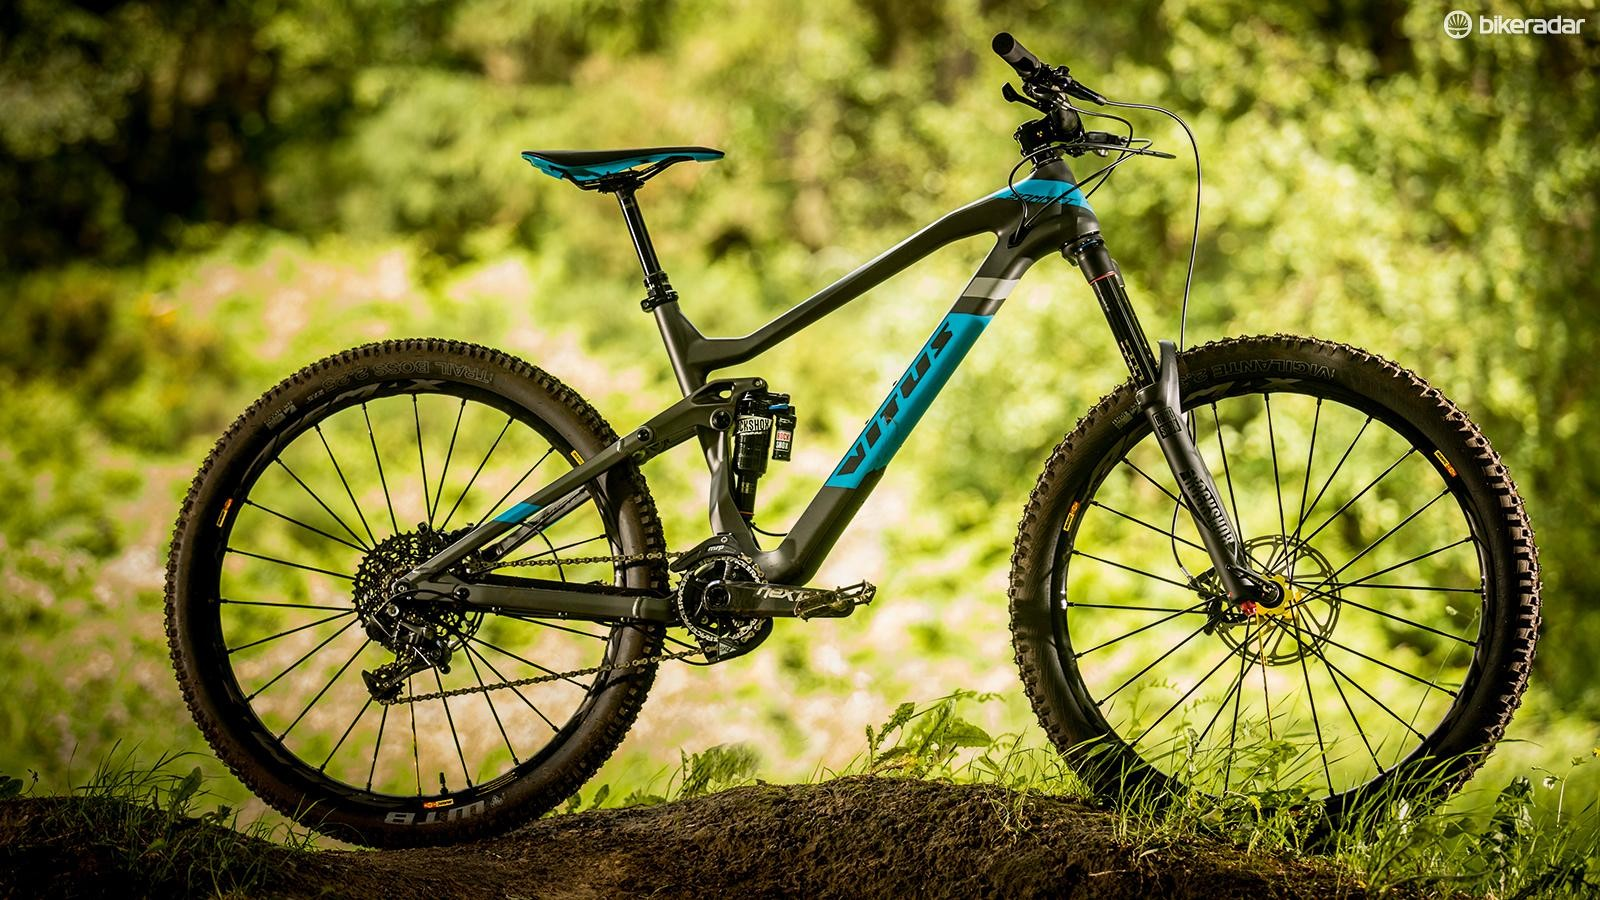 More of a long-travel trail bike thana super-aggro enduro shredder, theSommet is a great package